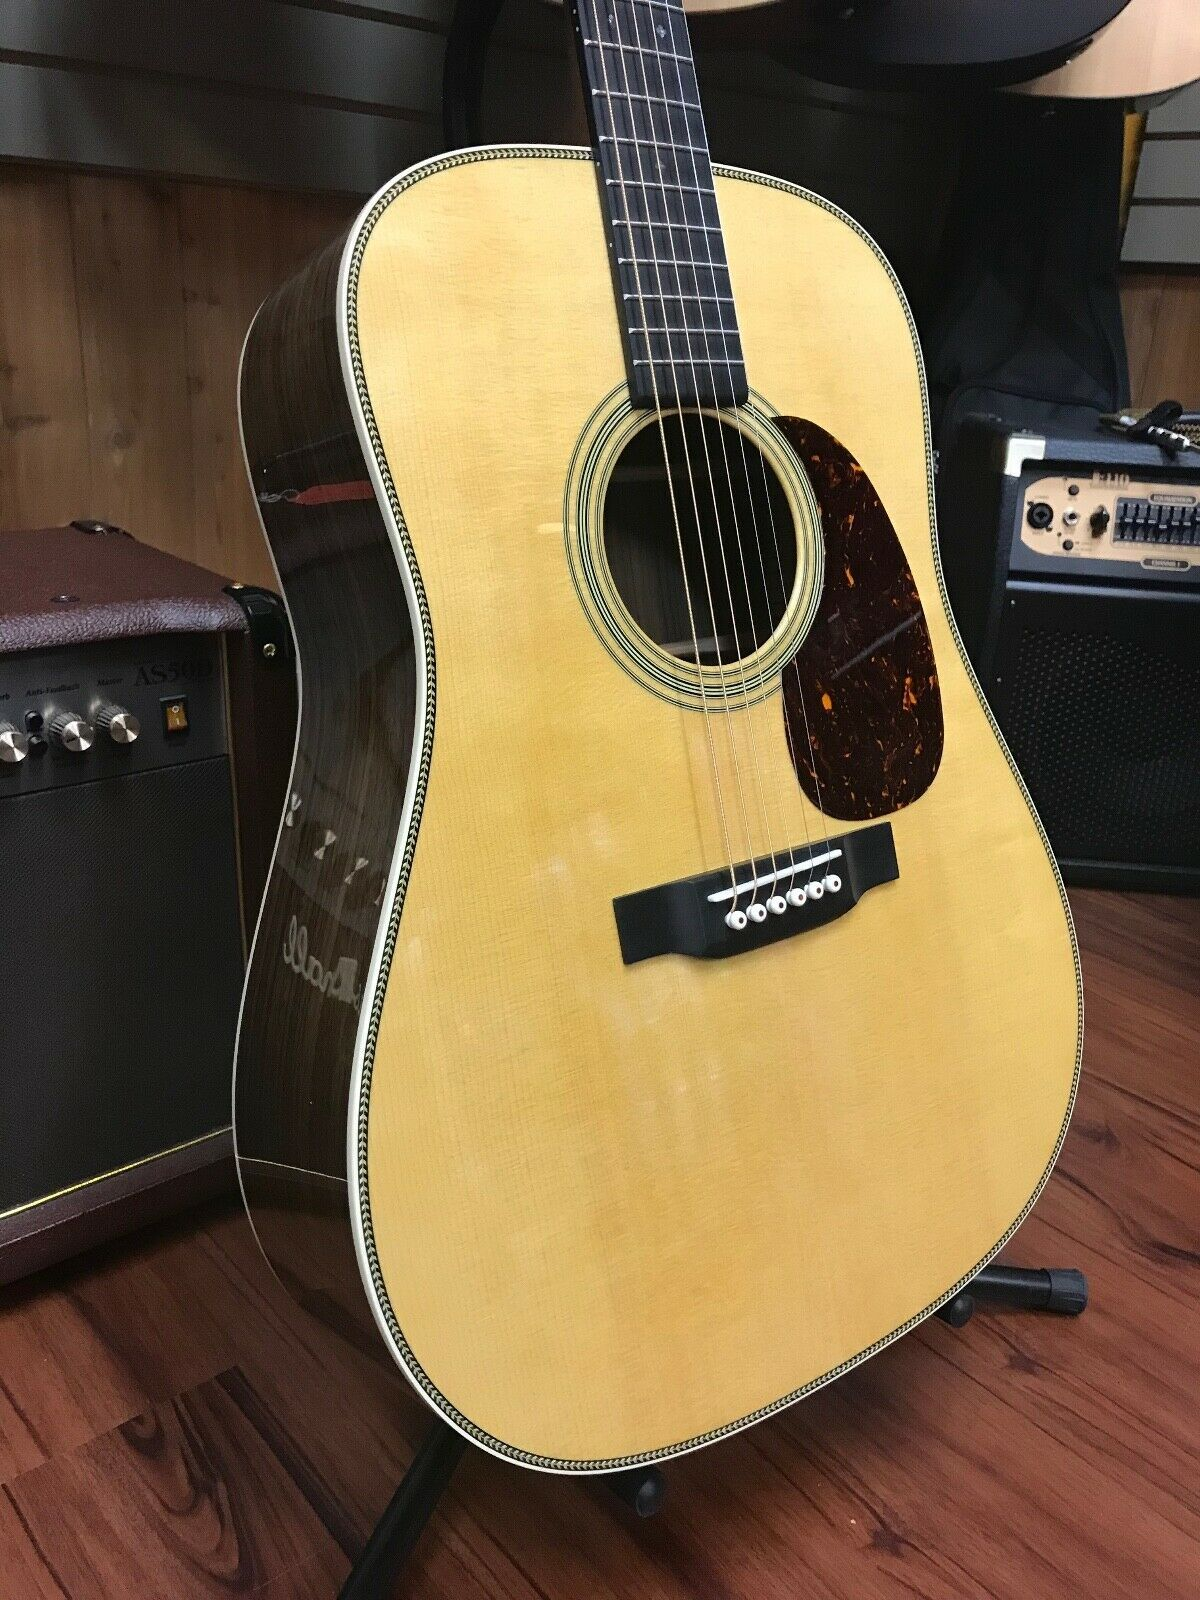 Best Choice Products 41in Full Size All Wood Acoustic Ele Https Www Amazon Com Dp B07lgdvy9b Ref Cm Best Acoustic Guitar Acoustic Electric Acoustic Guitar